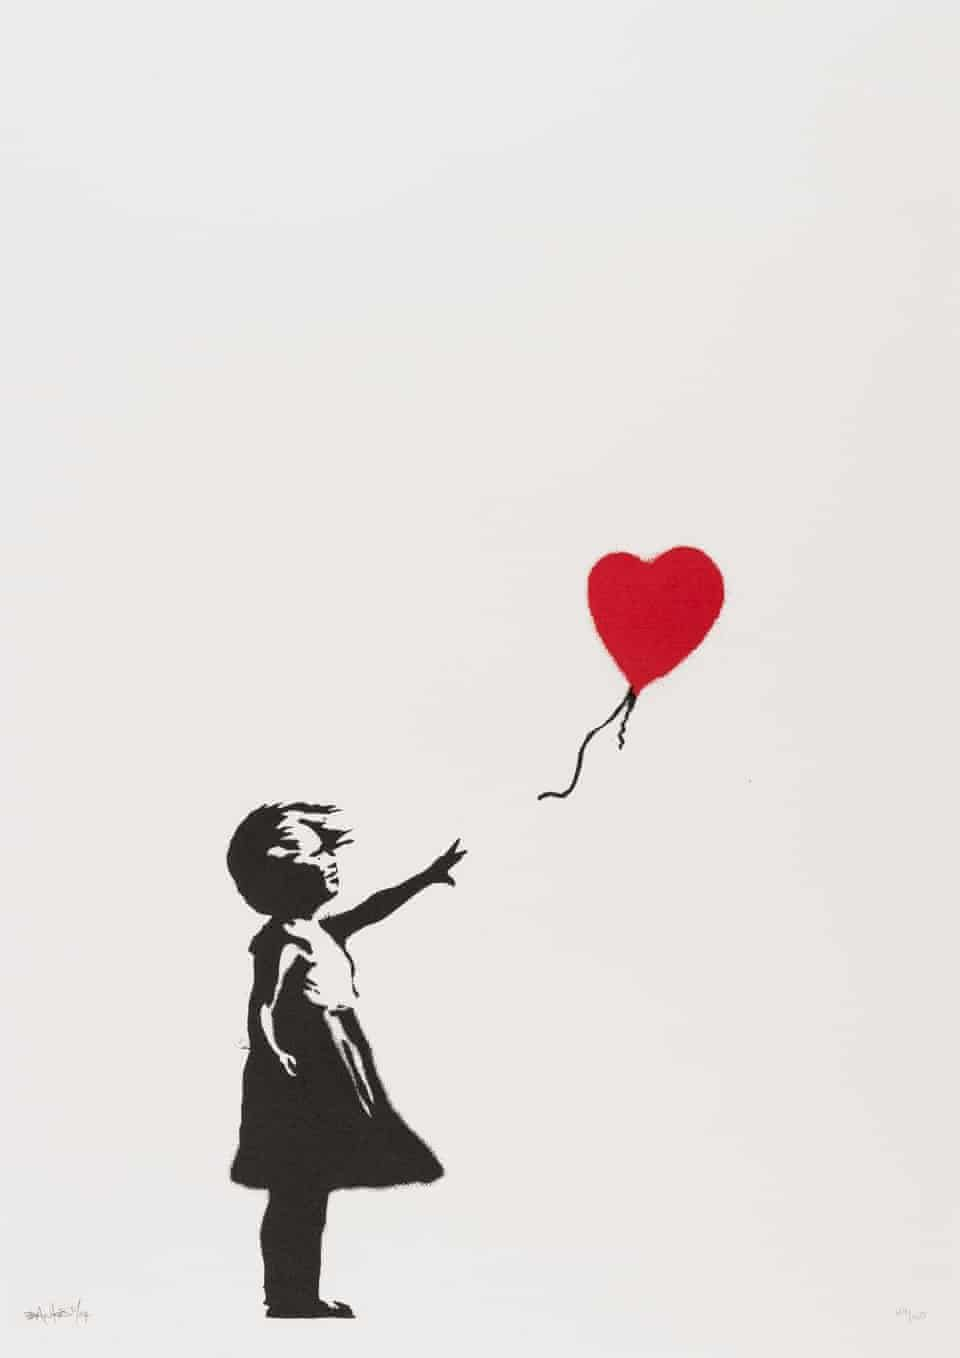 Banksy artworks up for auction in New York – in pictures